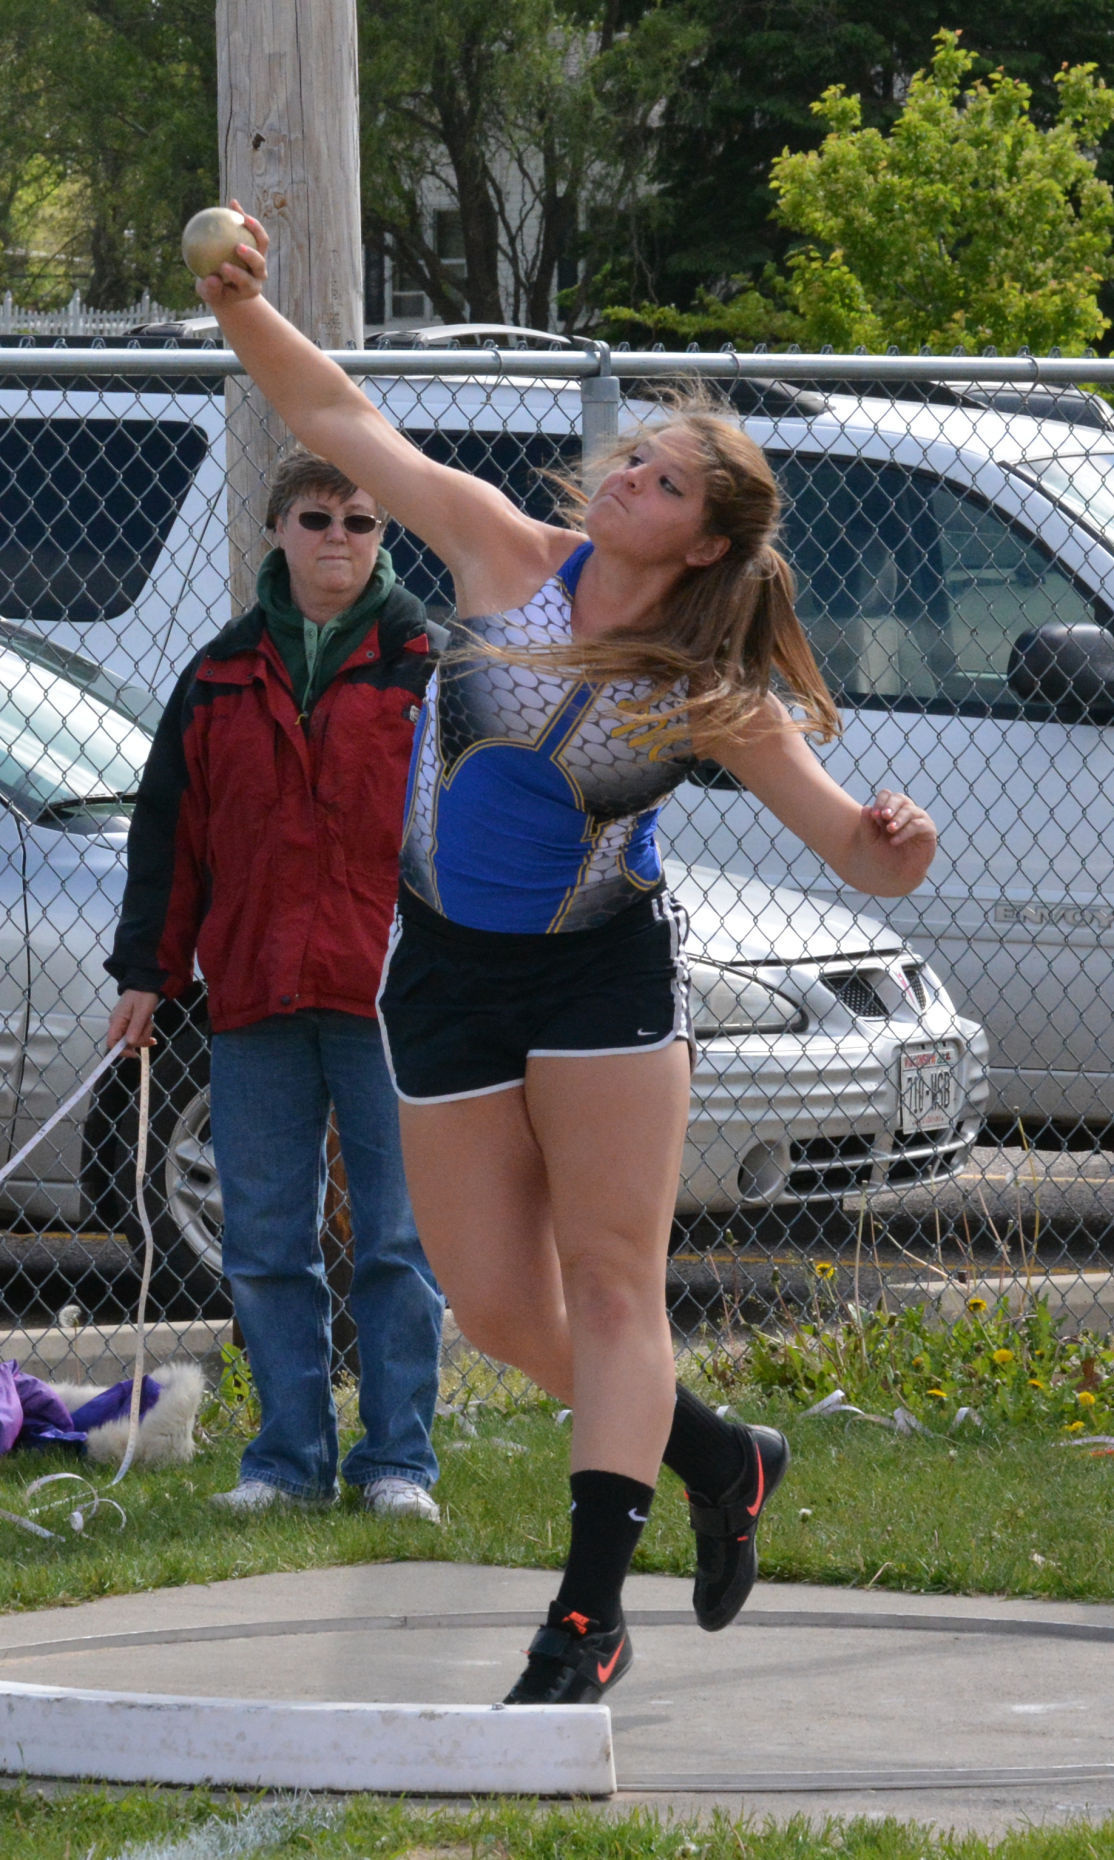 mauston single girls Mauston athletes relay for life could use your help tonight at 6pm for set-up meet at the track if you can will take less than an hour.